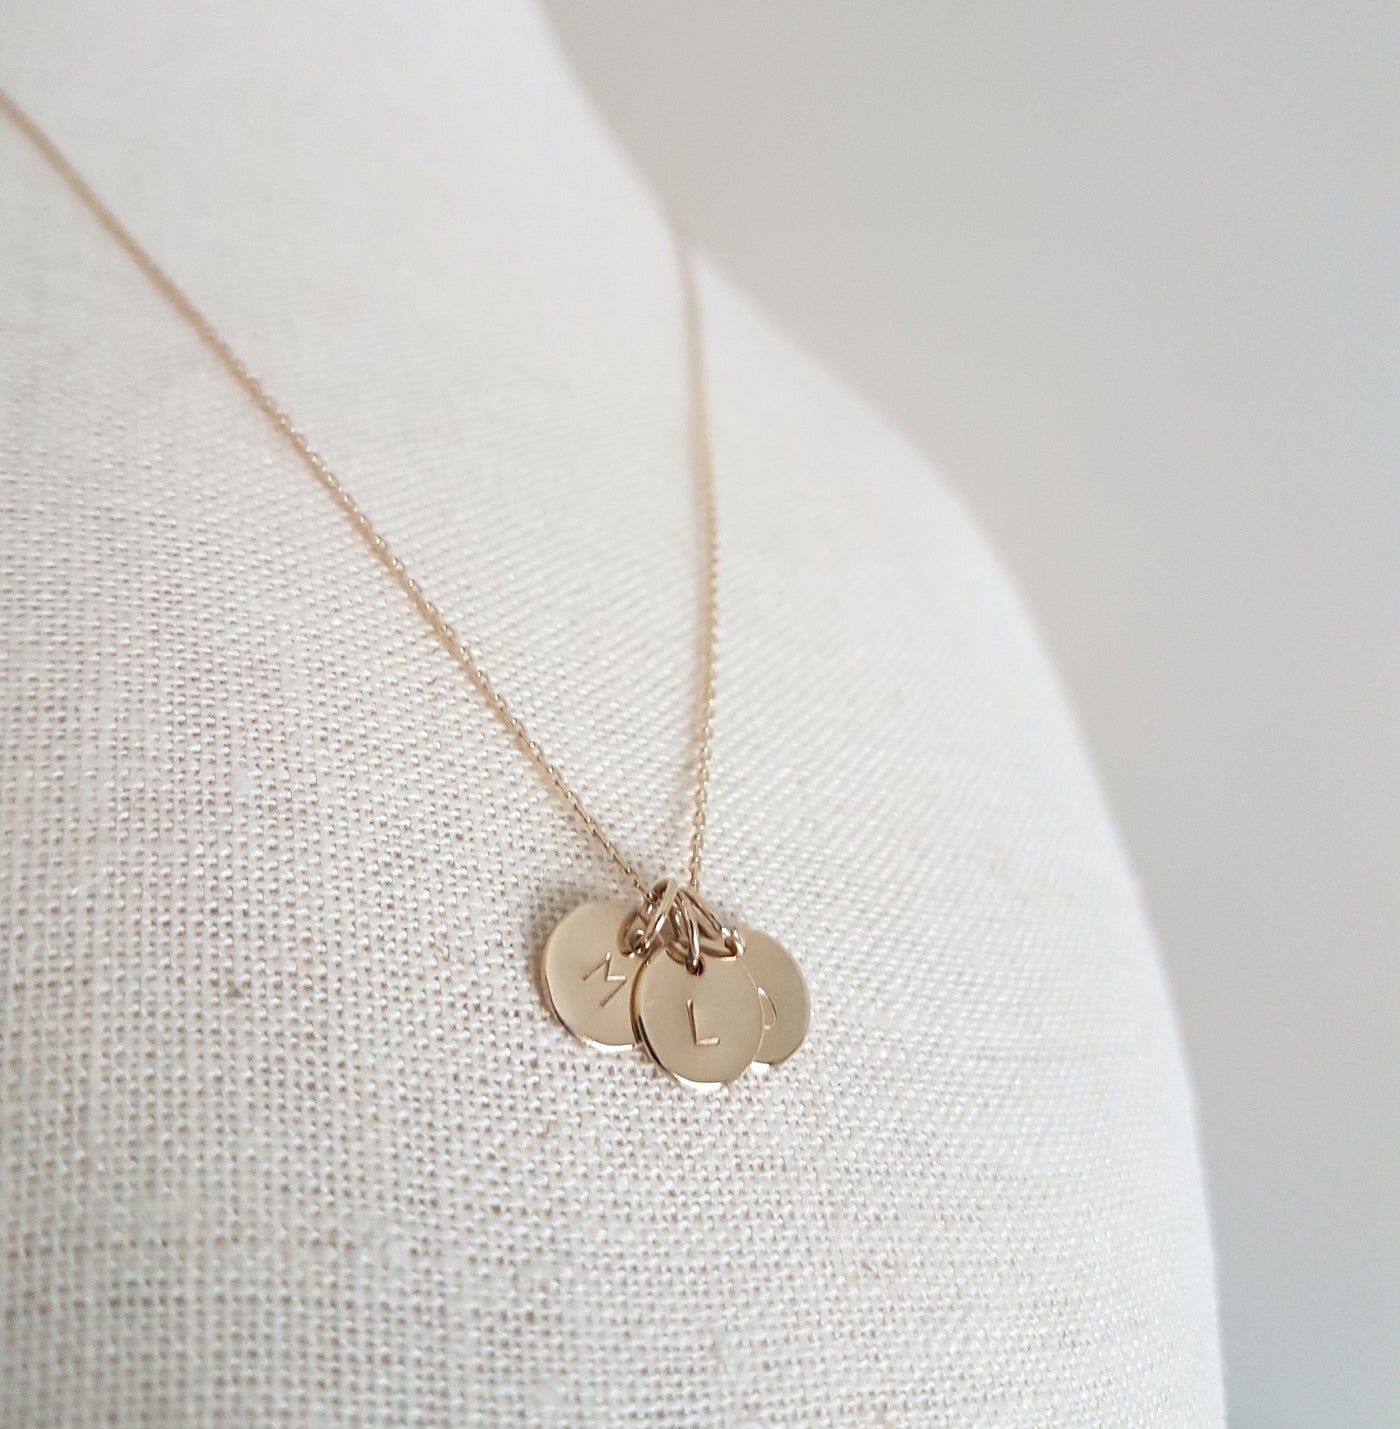 tiny flower pendant necklace pinterest rose adornment pin